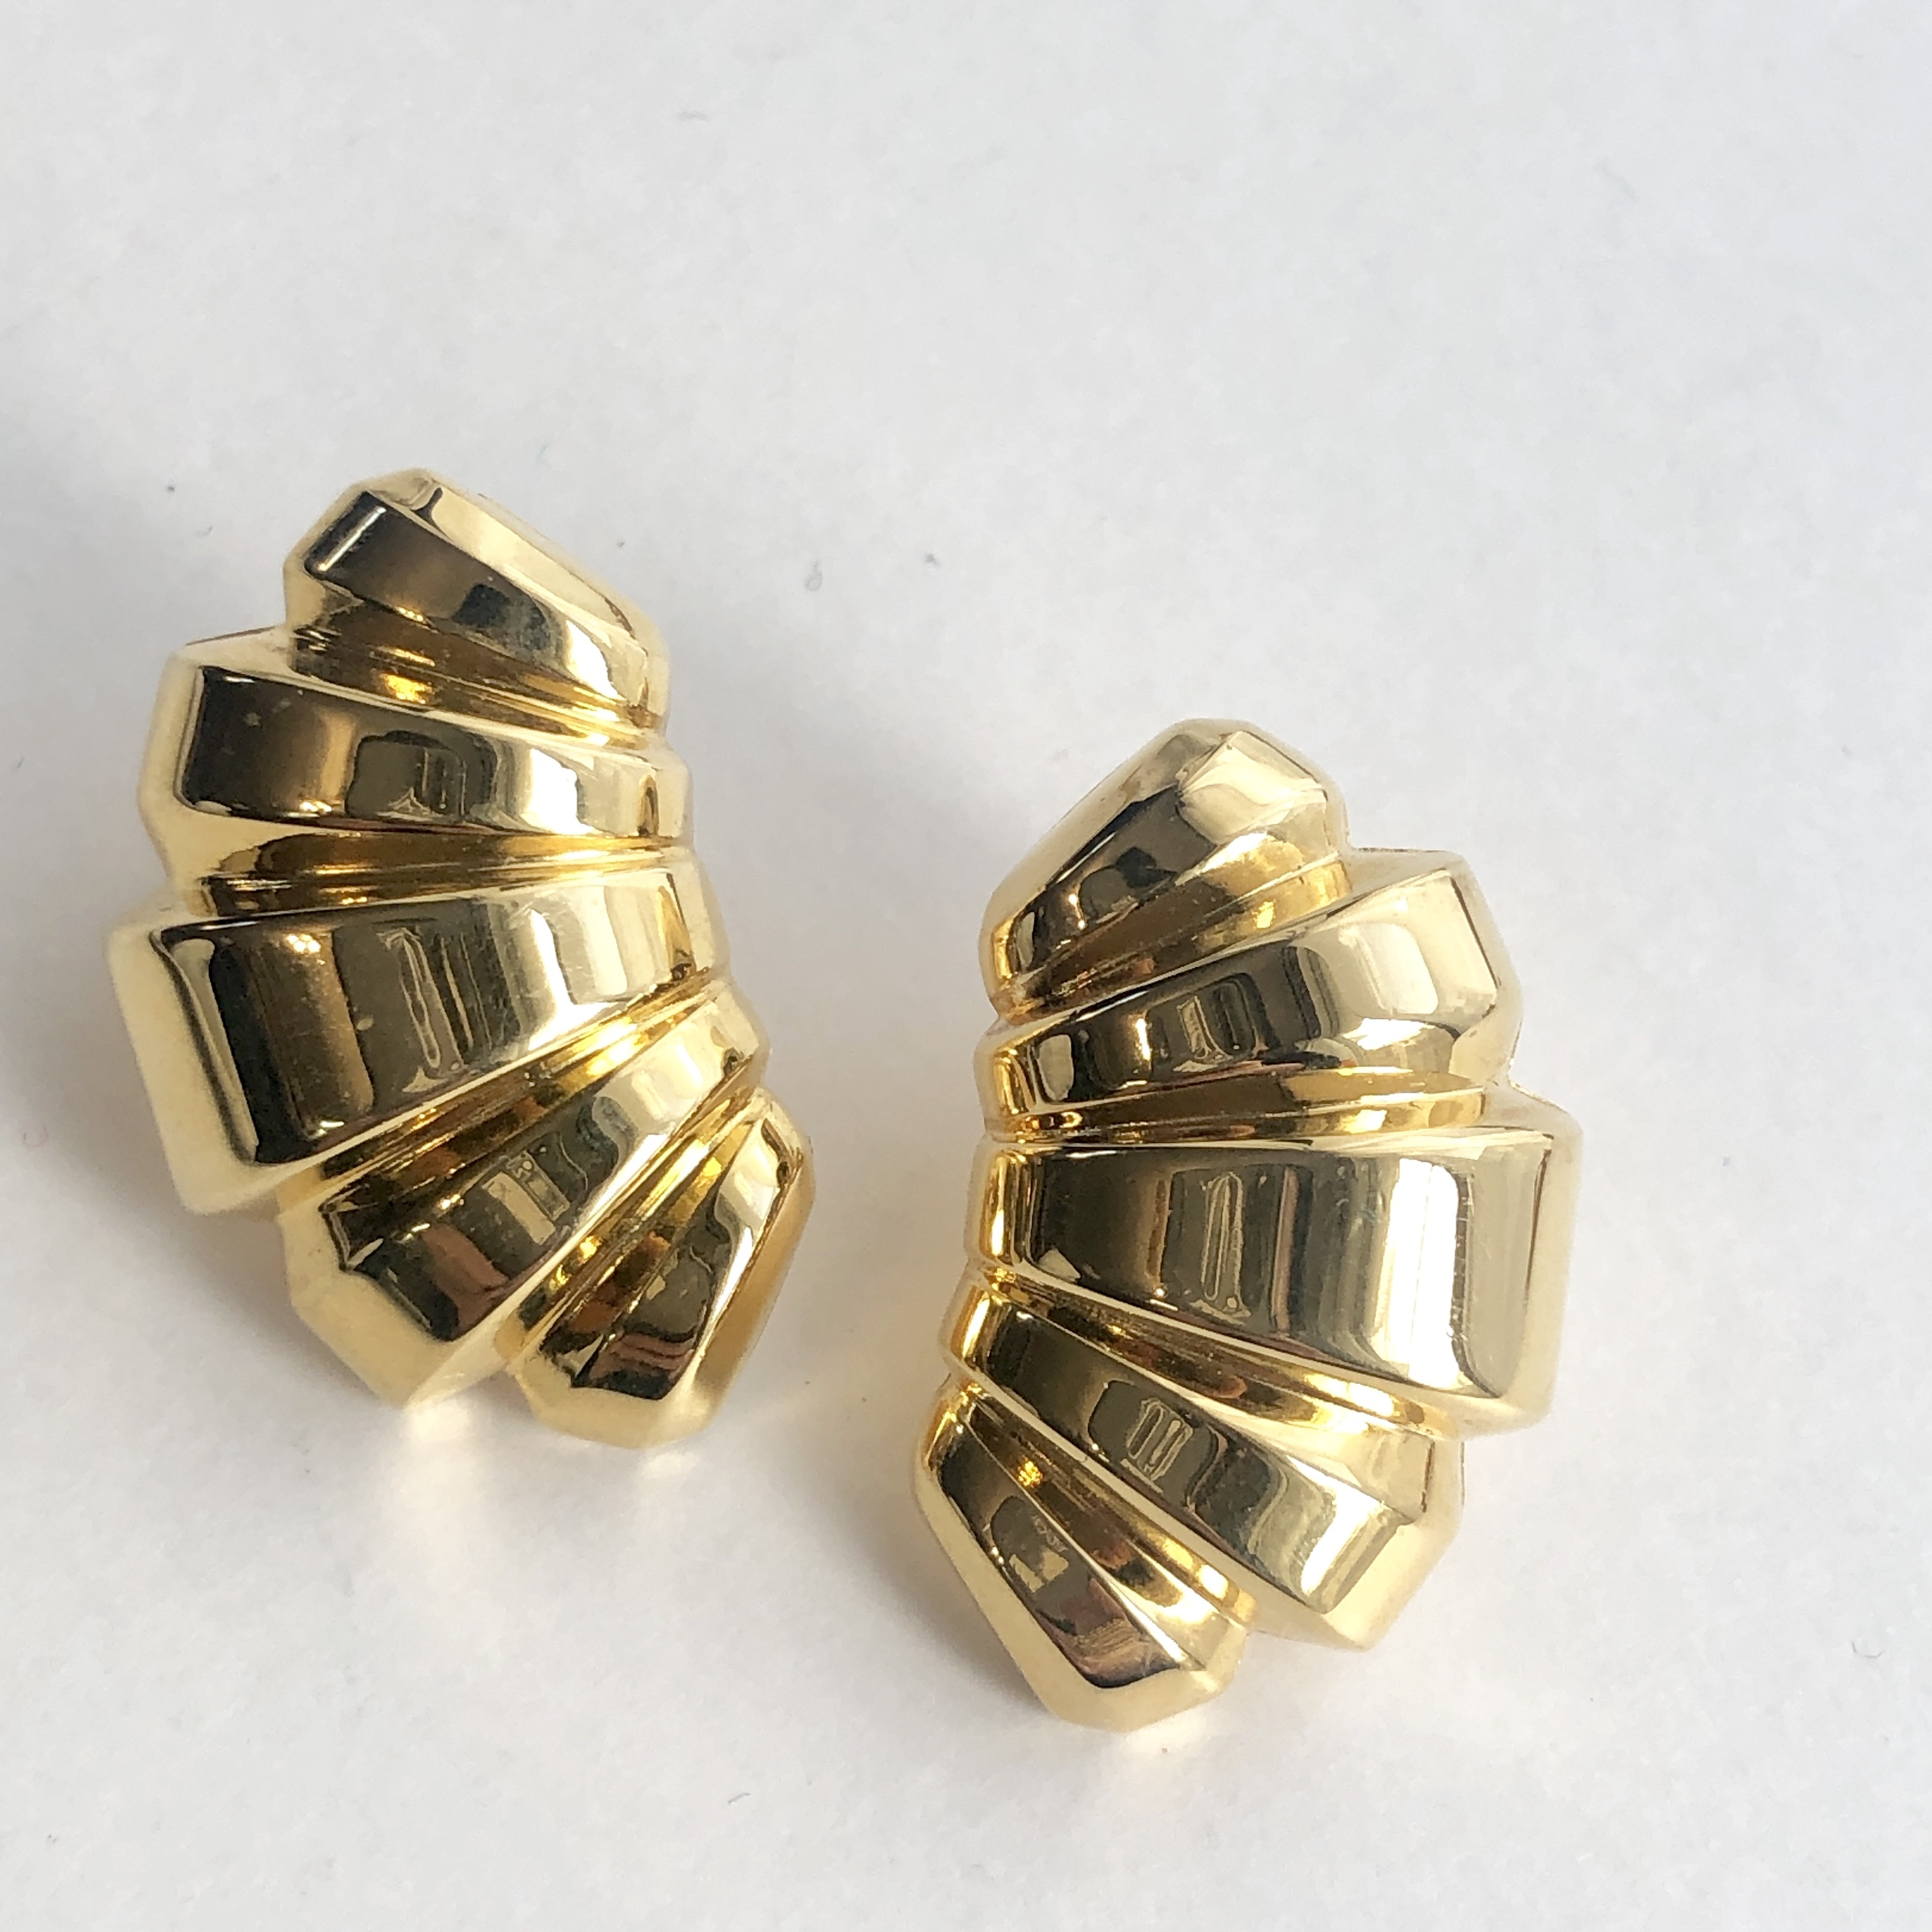 Vintage Monet croissant earrings No.709*